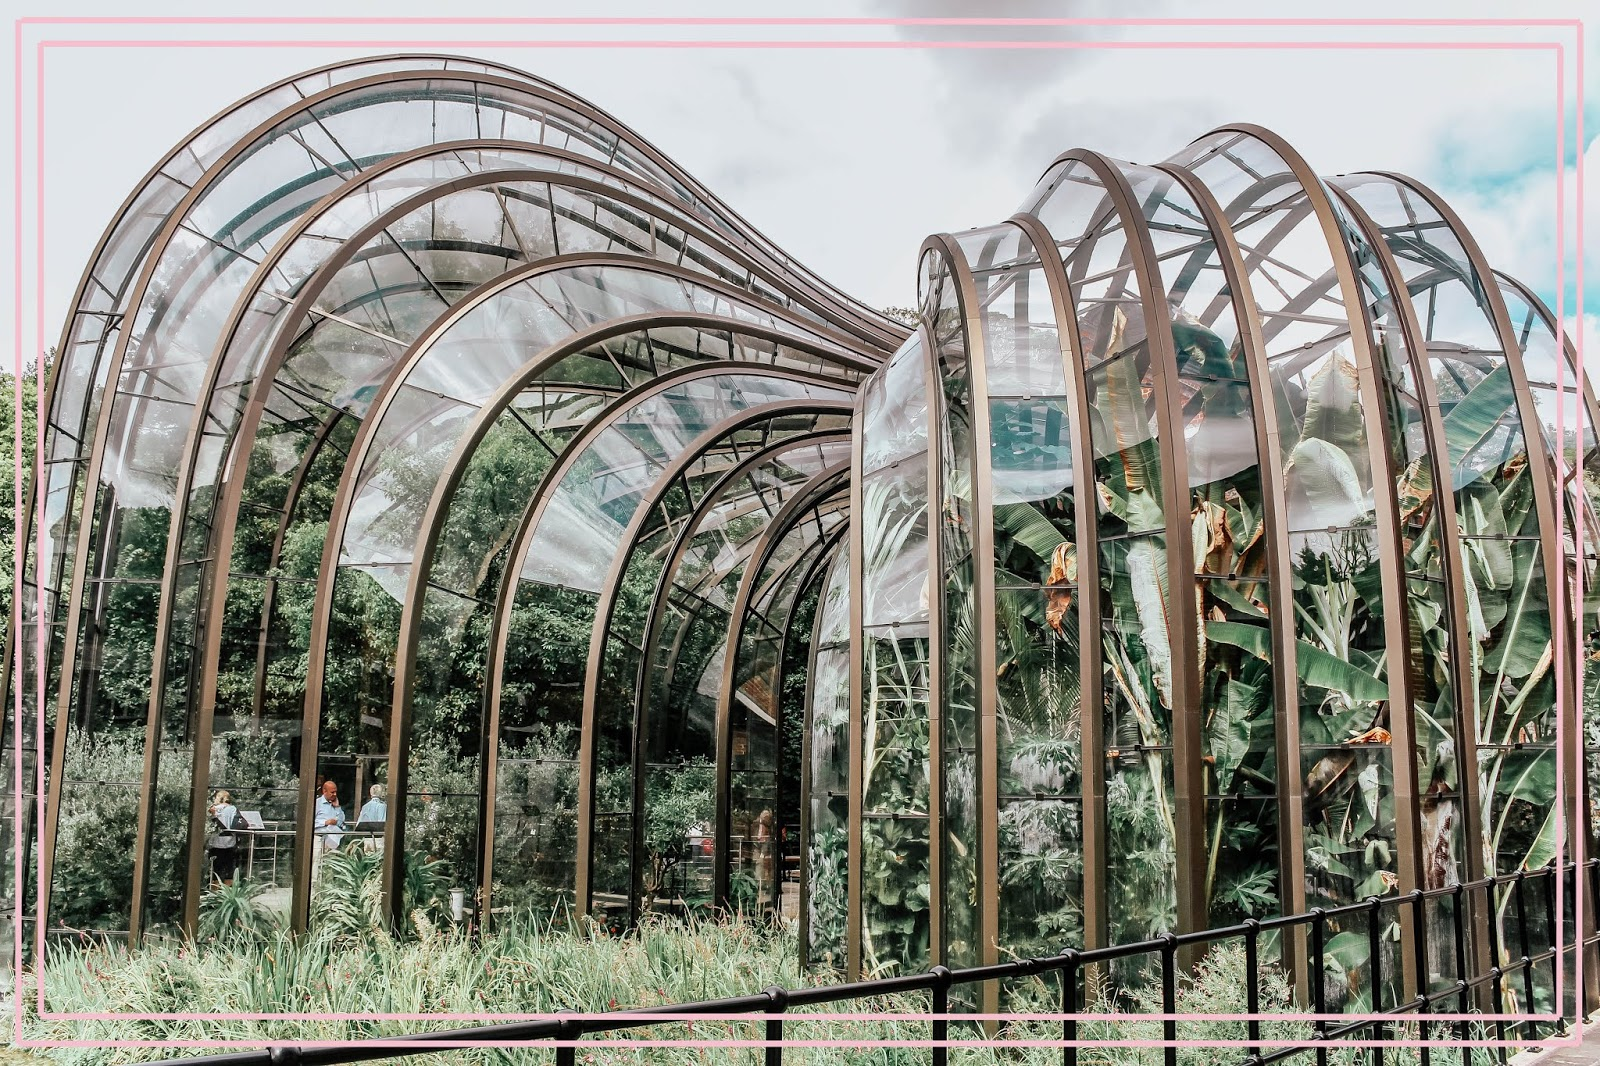 Bombay Sapphire Distillery Twin Glasshouse Photography